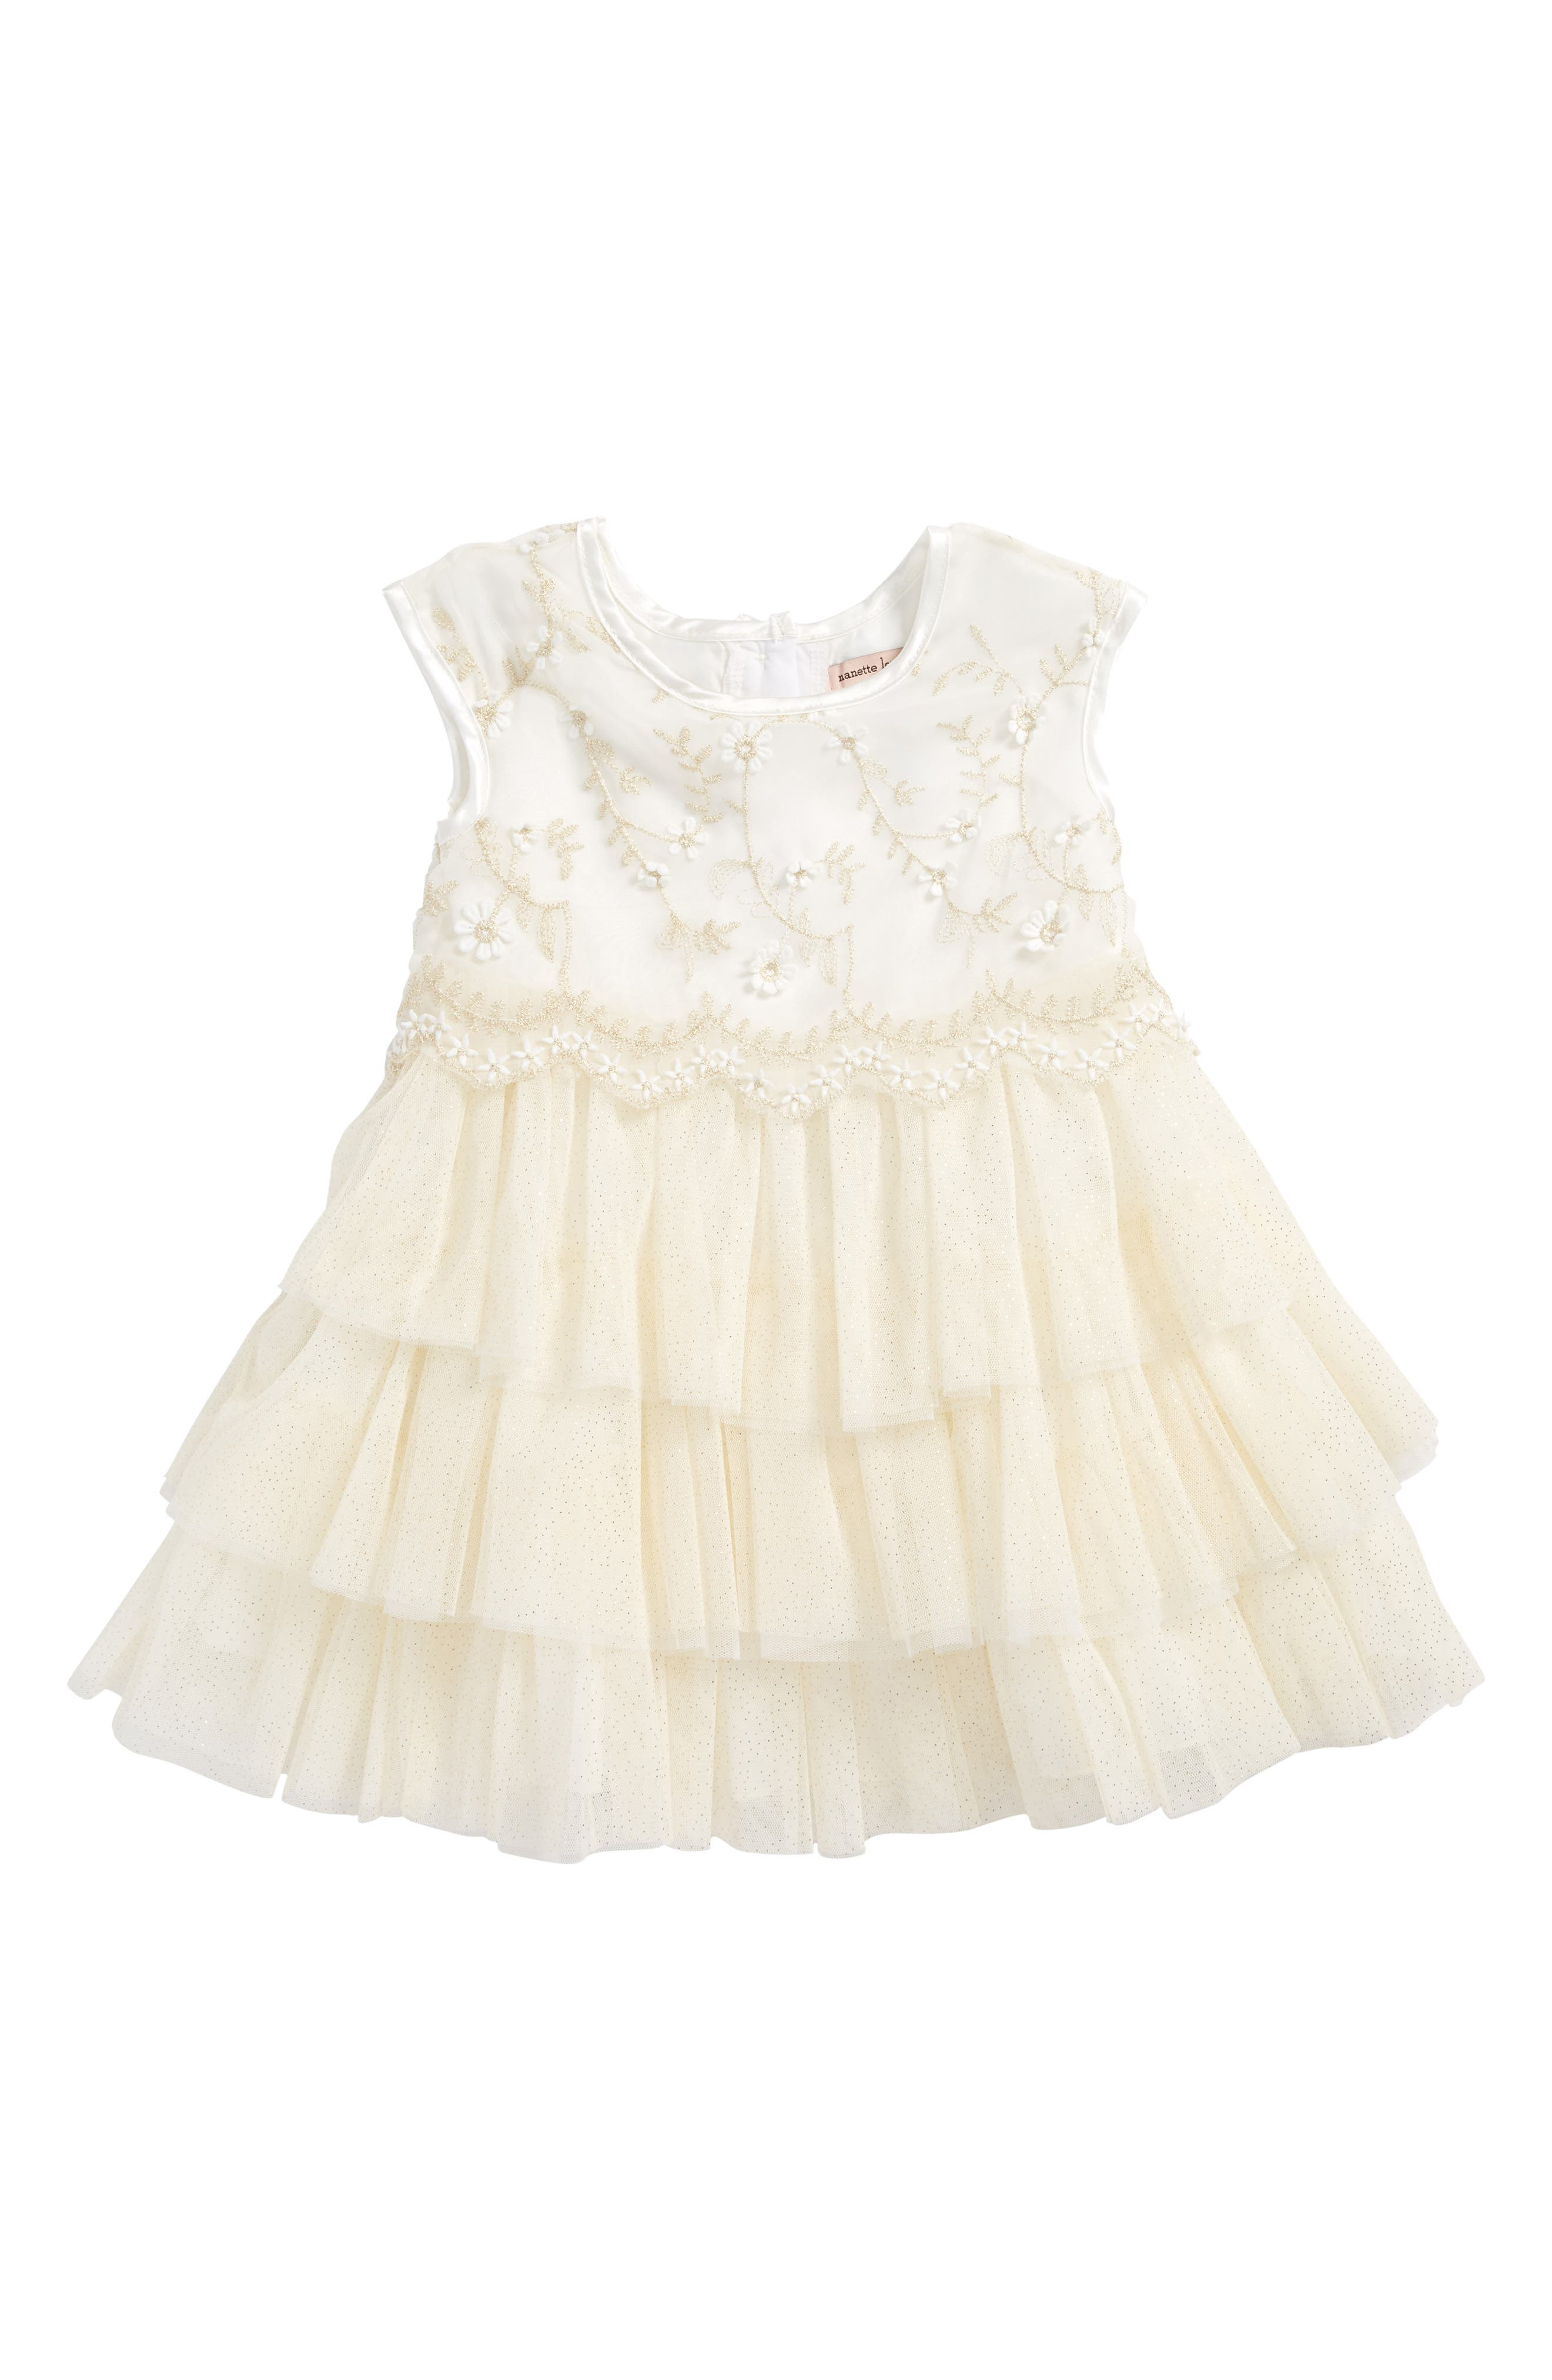 Embroidered Tulle Dress,                             Main thumbnail 1, color,                             Cream